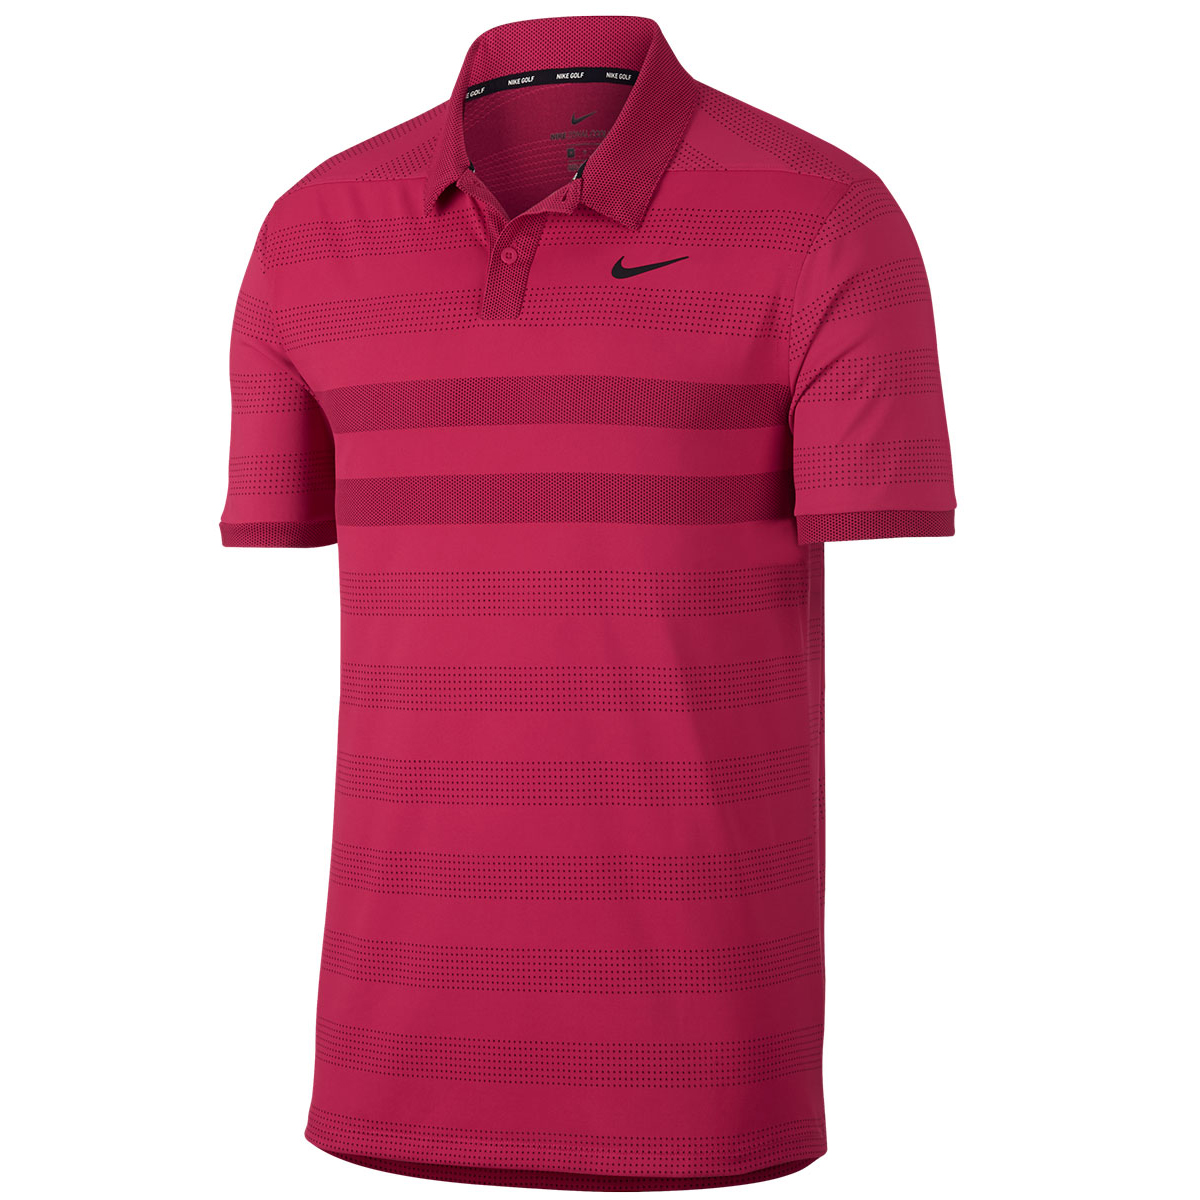 8fa28a4e Nike Golf Zonal Cooling Striped Polo Shirt from american golf